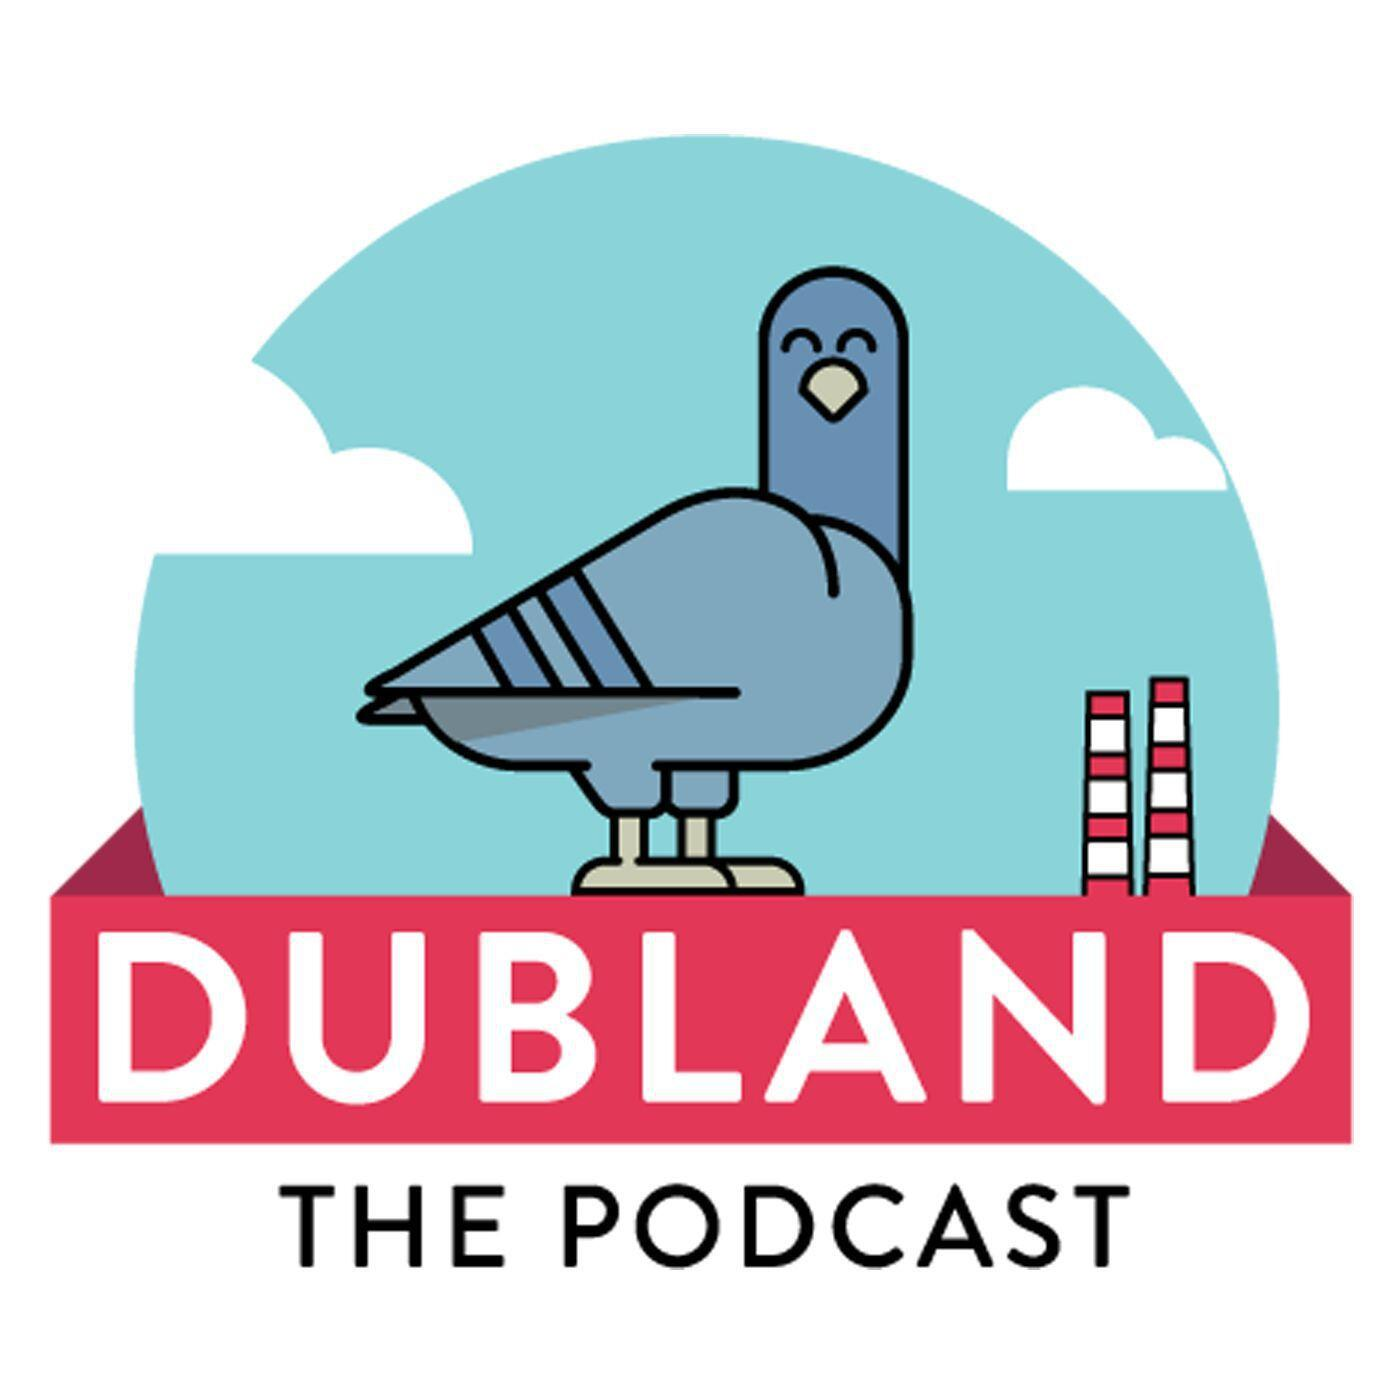 DUBLAND THE PODCAST 23